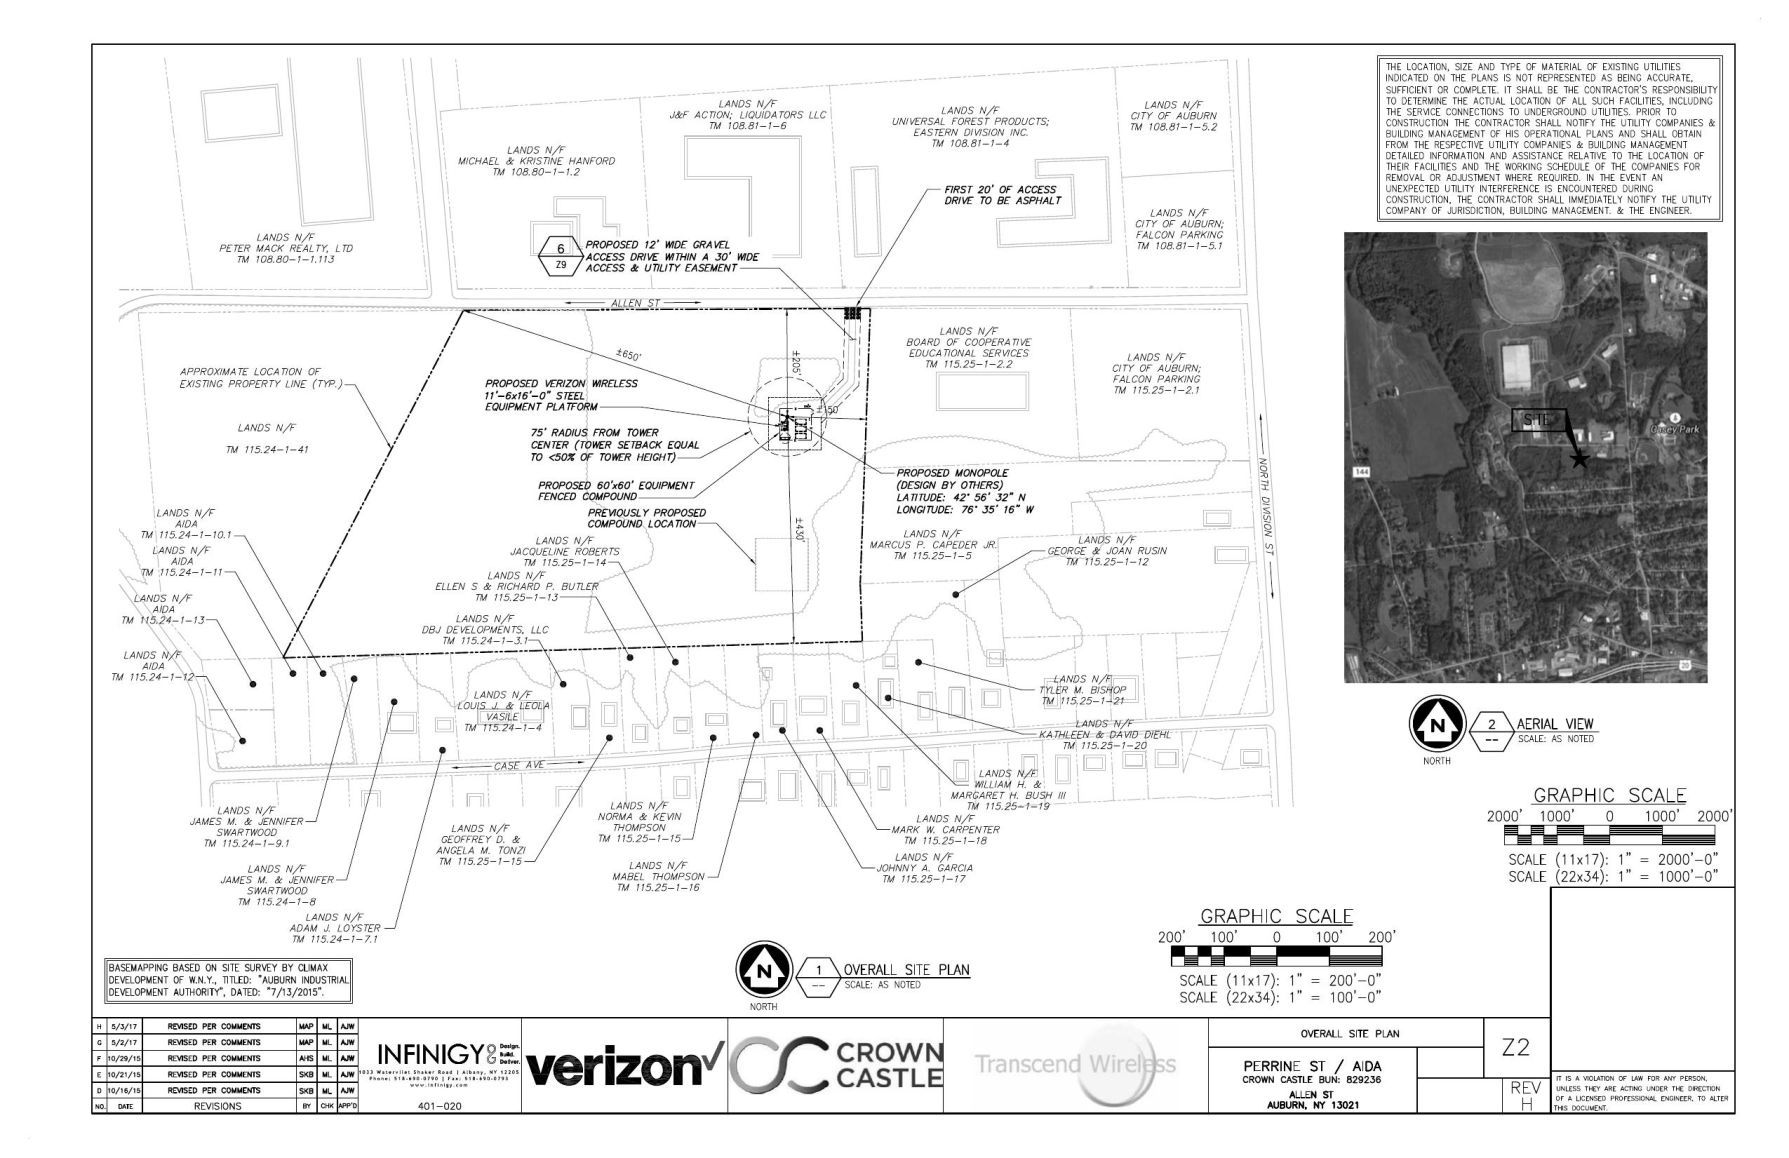 download pdf allen street cell tower site plan [ 1200 x 777 Pixel ]